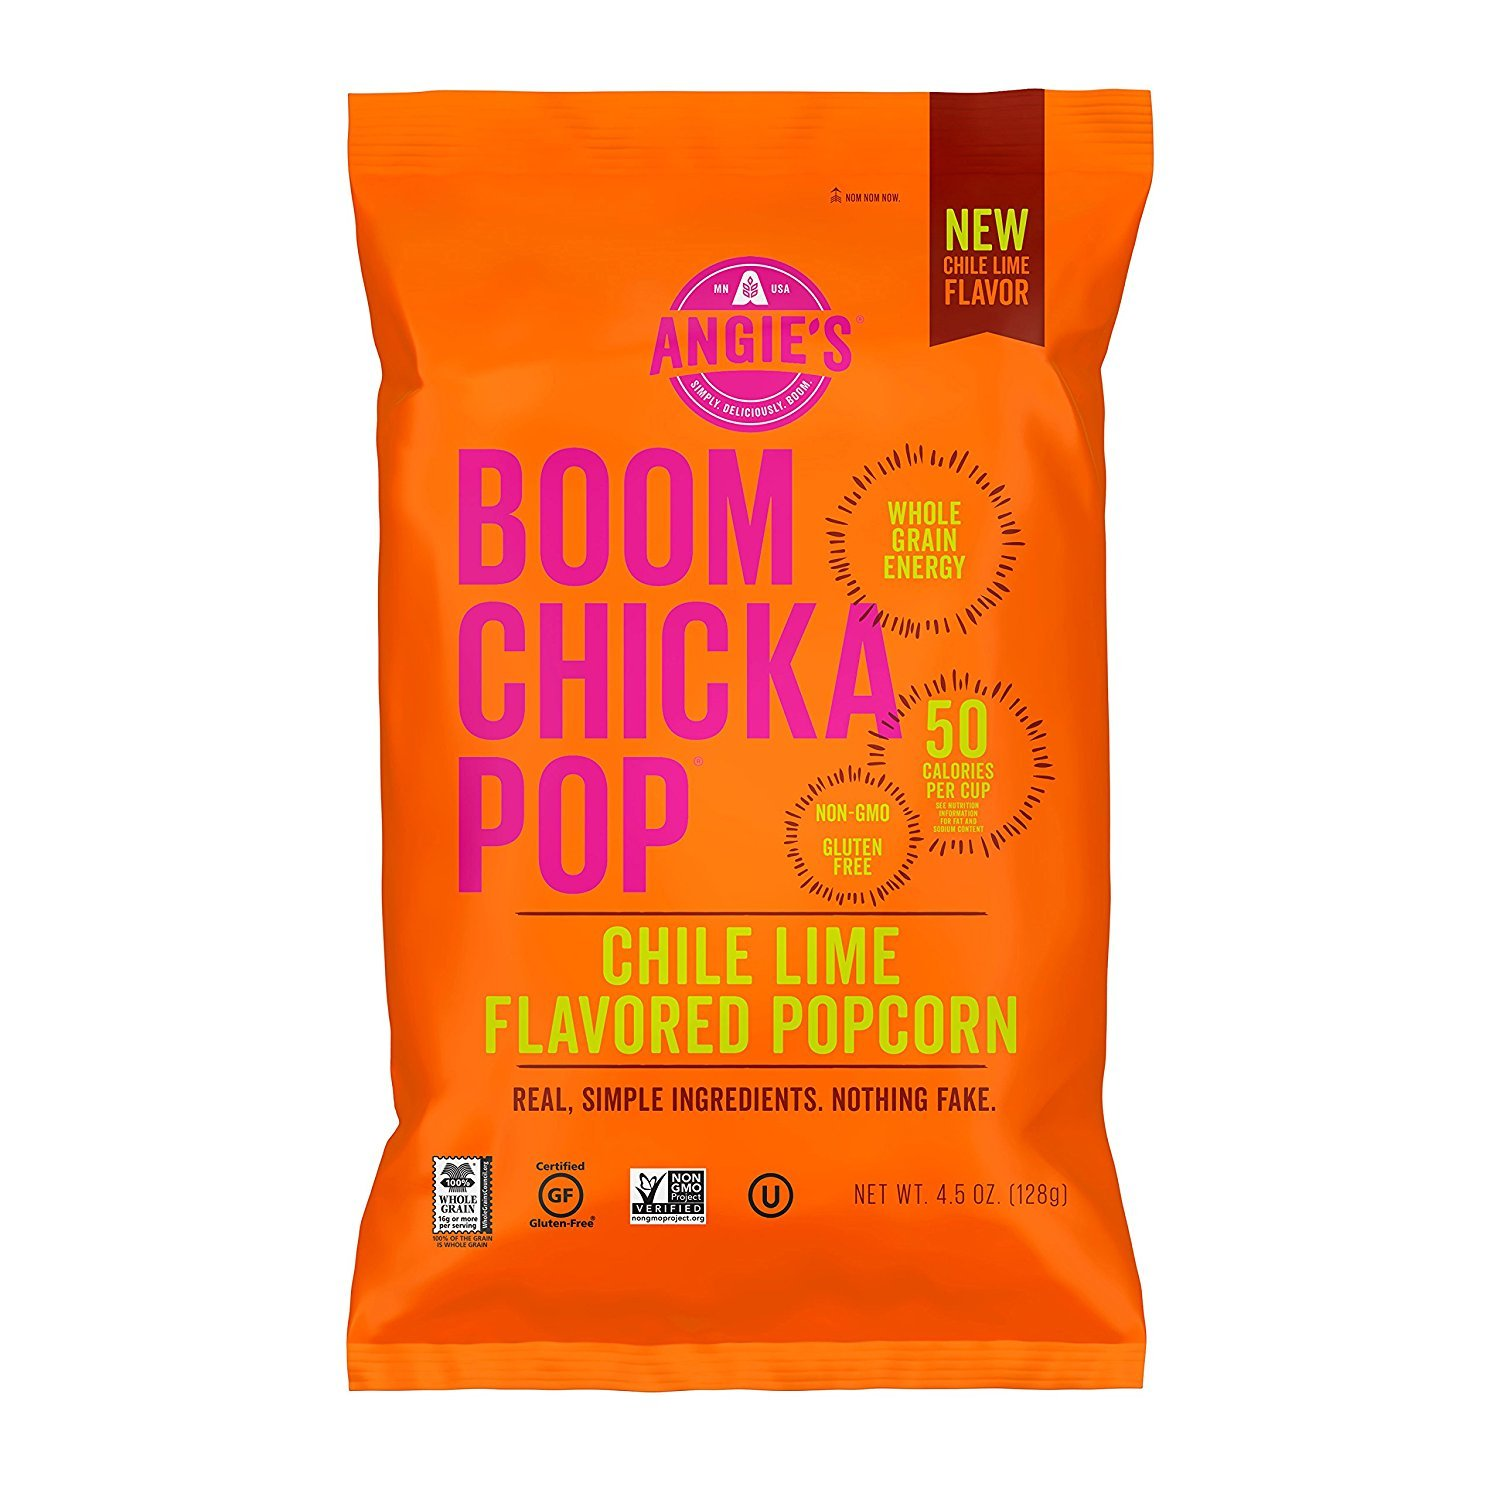 Angie's Kettle Corn Popcorn - Boom Chicka Pop - Chile Lime - Case Of 12 - 4.5 Oz